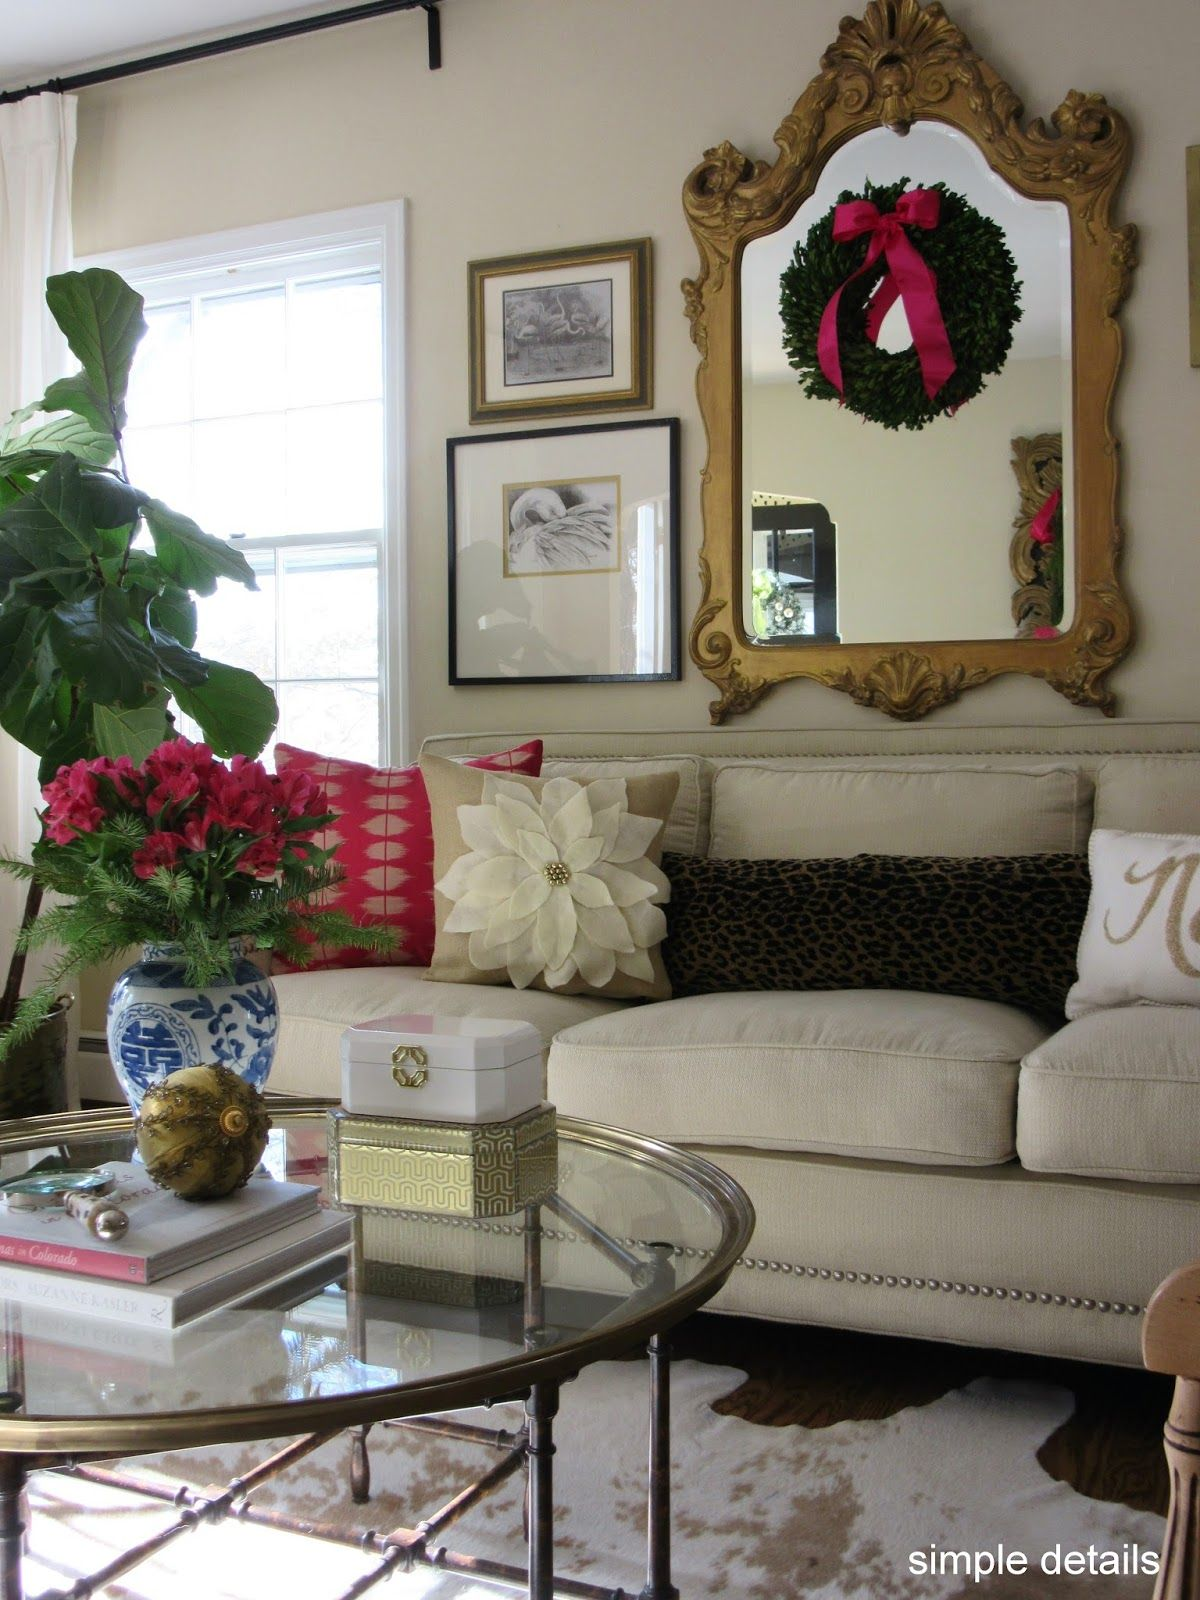 Christmas+Tour+2015+-+Neutral+with+pink+-+ornate+gold+mirror+-+Pottery+Barn+Knock+Off+Pillow.jpg (1200×1600)